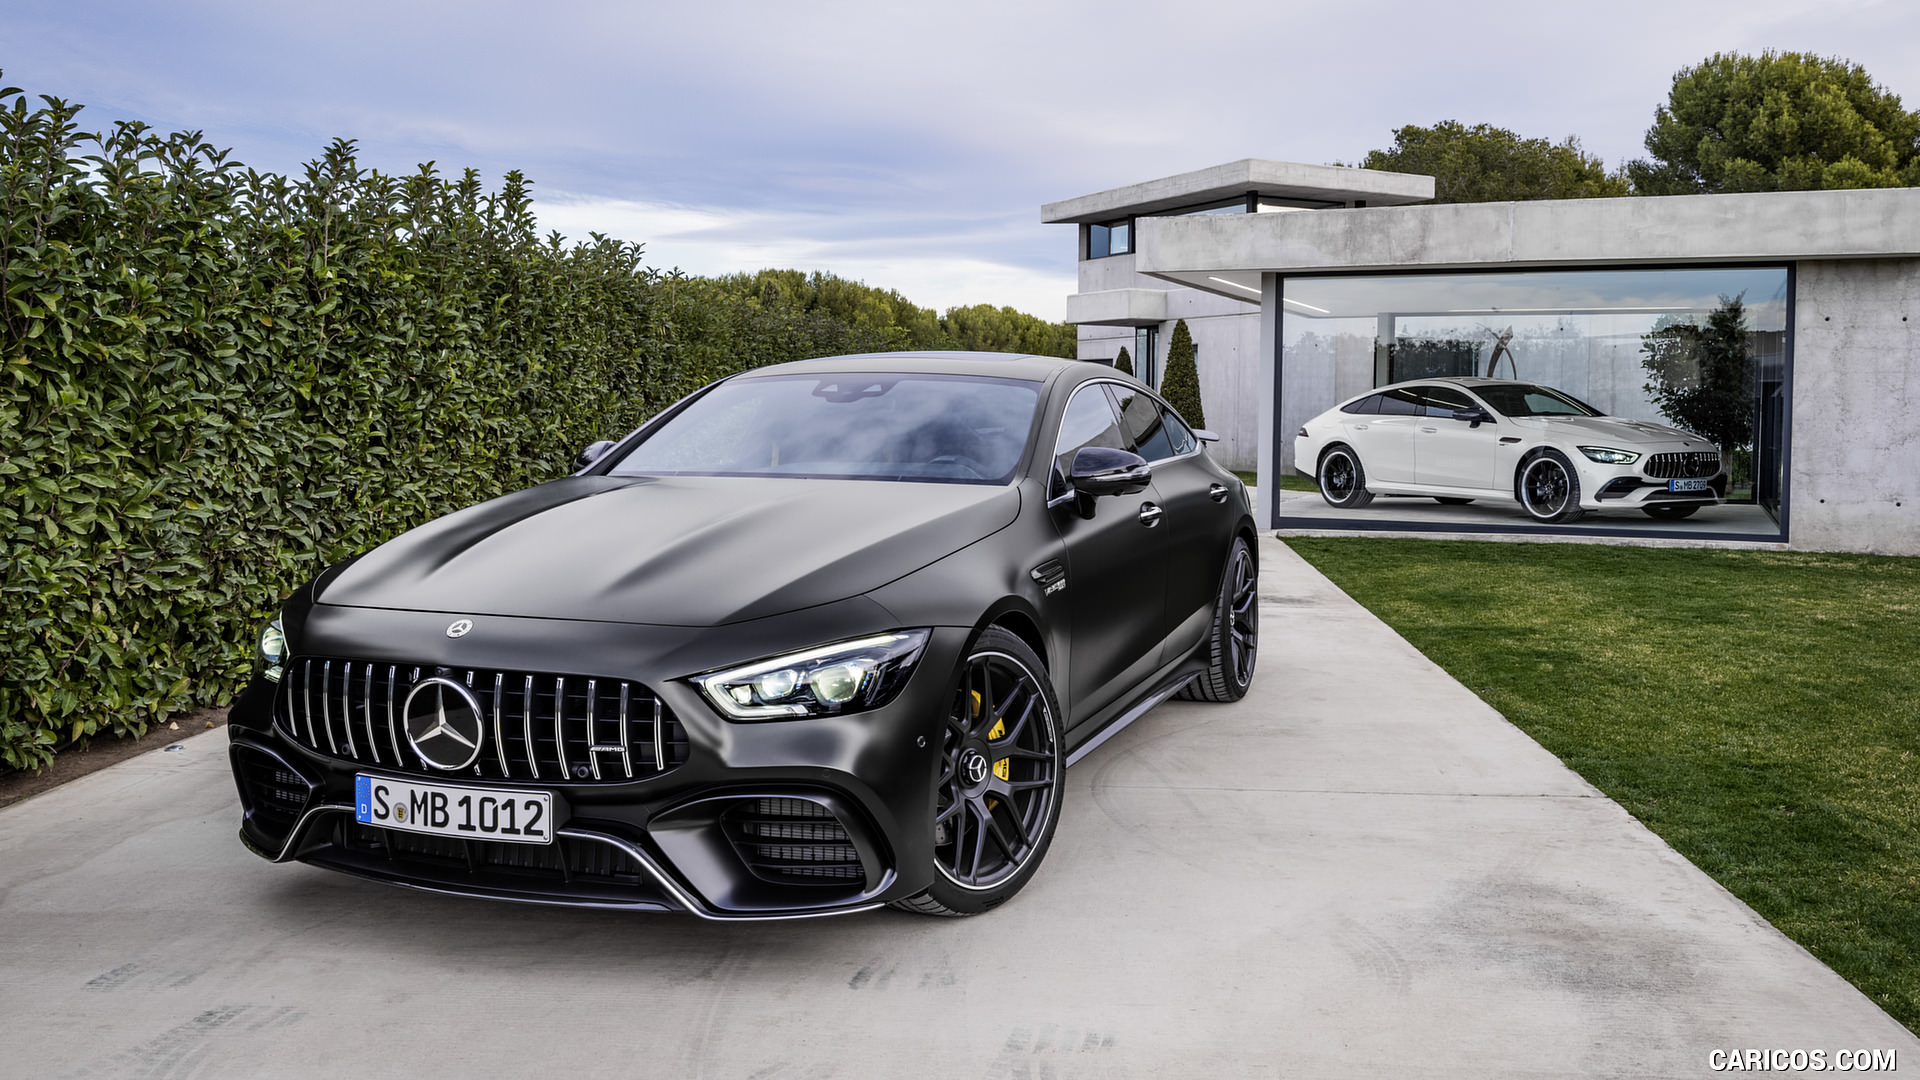 voici la mercedes amg gt 4 portes mercedes etoile mont blanc. Black Bedroom Furniture Sets. Home Design Ideas